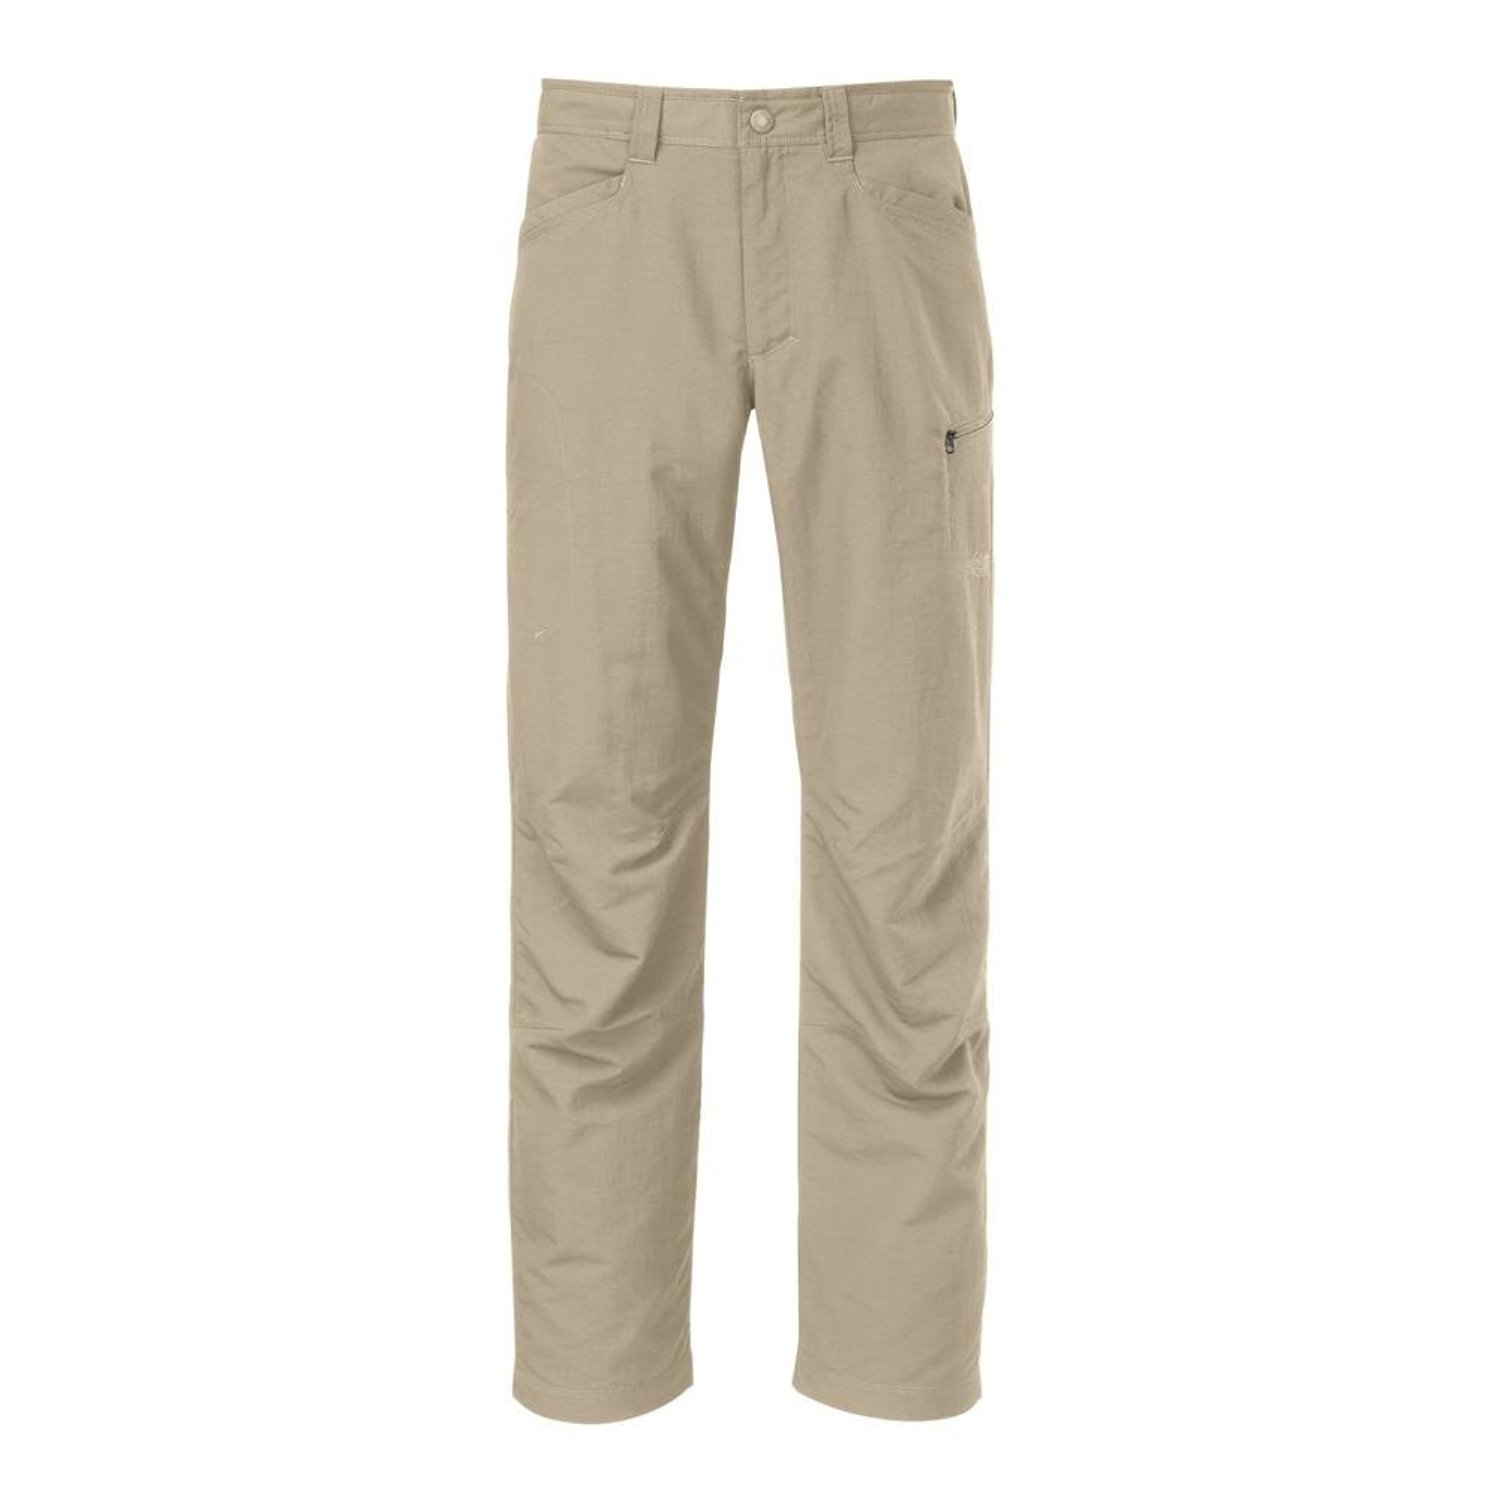 22ccc8d33066 Get Quotations · The North Face Paramount II Pant Mens Dune Beige 30